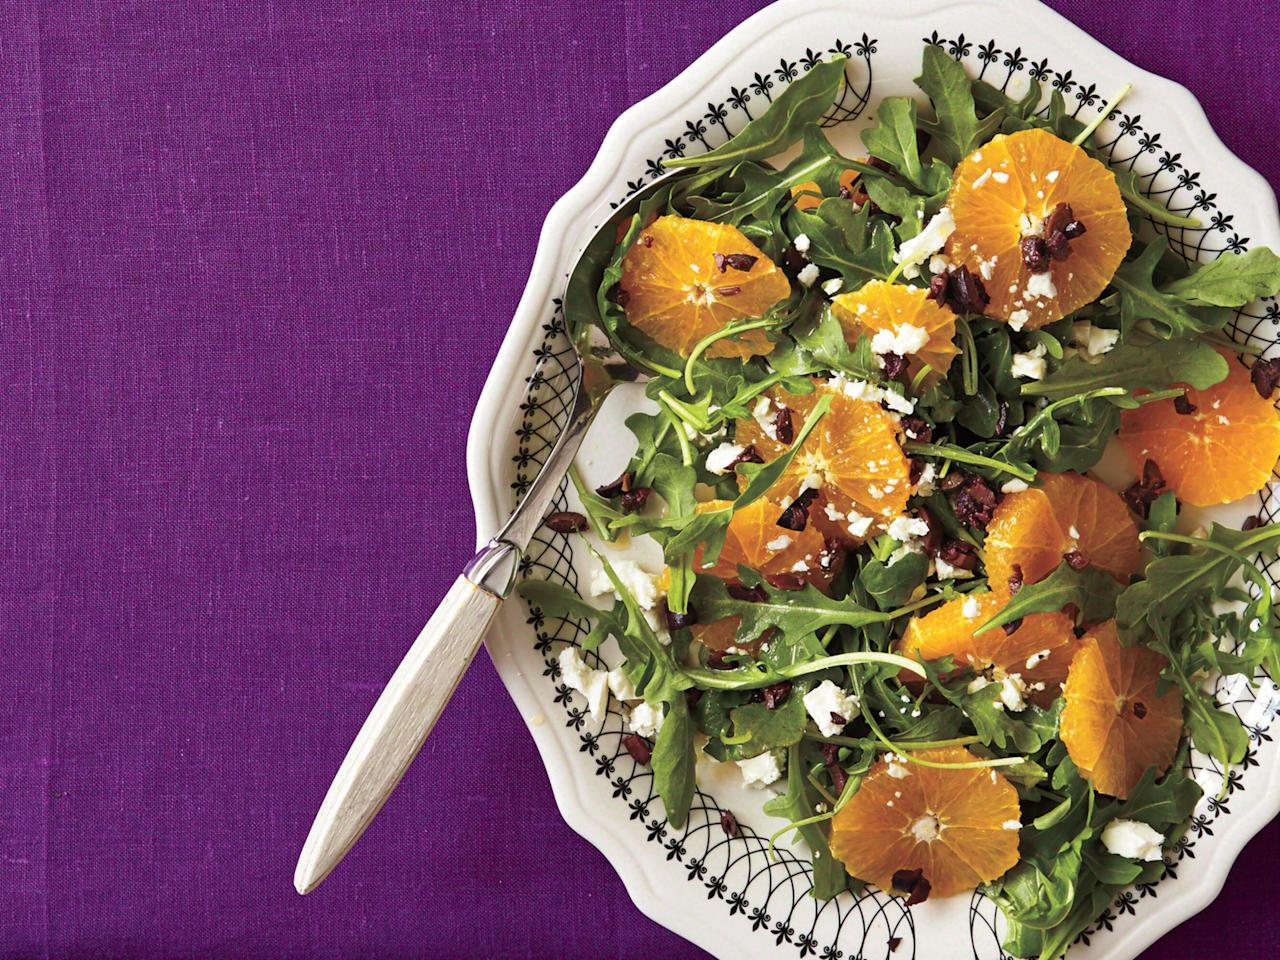 "<p>Skip the food coloring this year and bring Halloween hues to the table in the form of a healthy salad, instead. Orange slices, black Kalamata olives, feta, and a red wine vinaigrette infuse this arugula salad with bright Mediterranean flavors. </p><p><a href=""https://www.myrecipes.com/recipe/orange-black-salad-platter"">Orange-and-Black Salad Platter Recipe</a></p>"